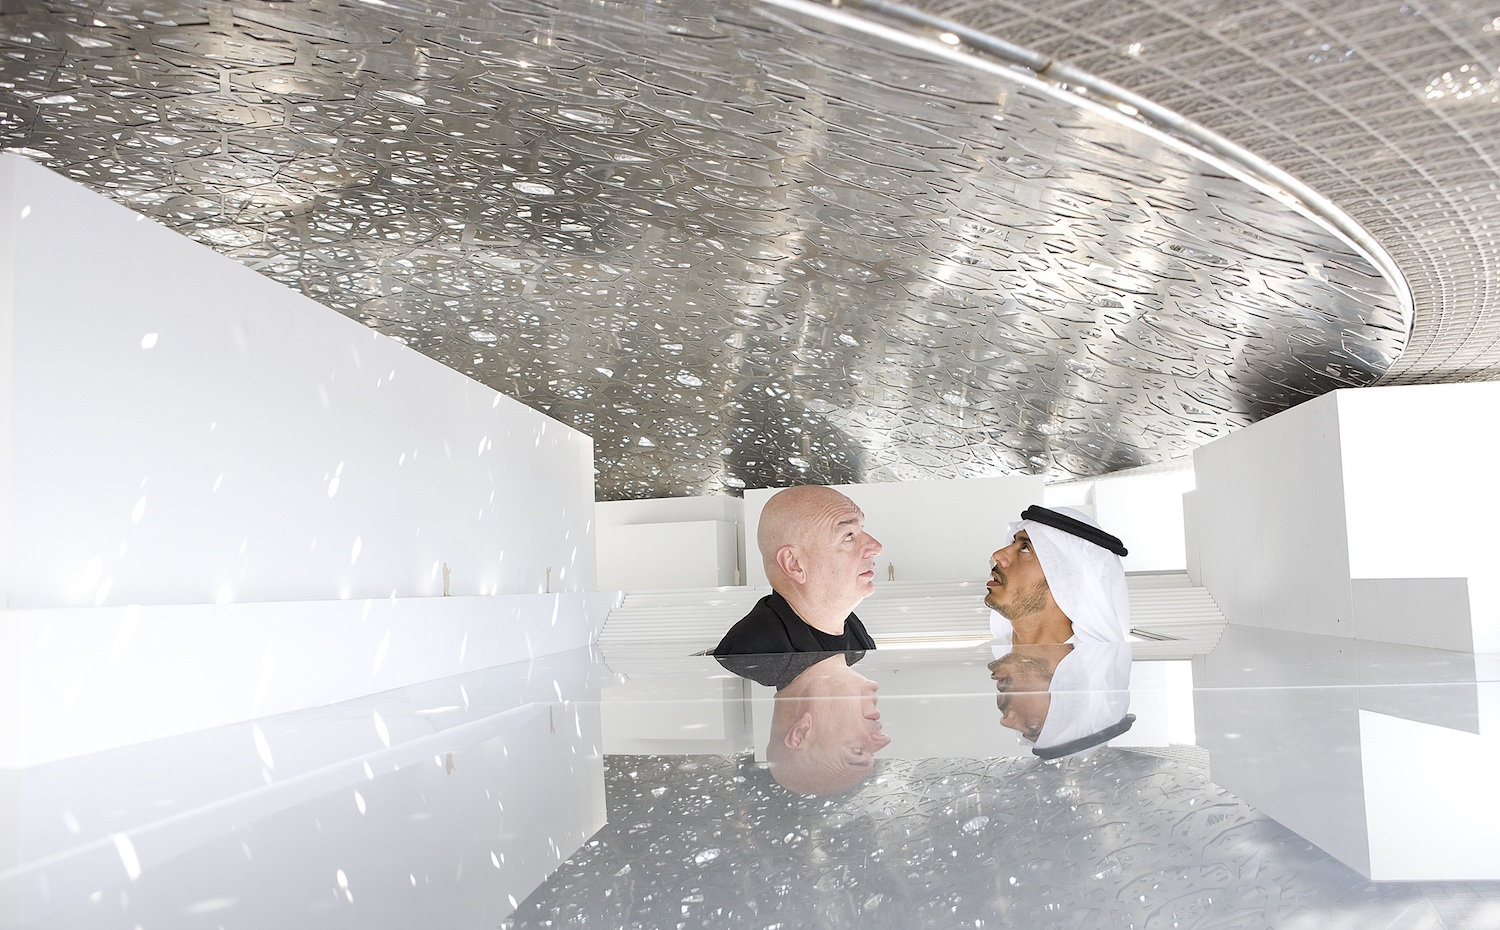 jean nouvel and he sheikh sultan - under mock up dome 1. [01] El Louvre de Abu Dhabi, por Jean Nouvel